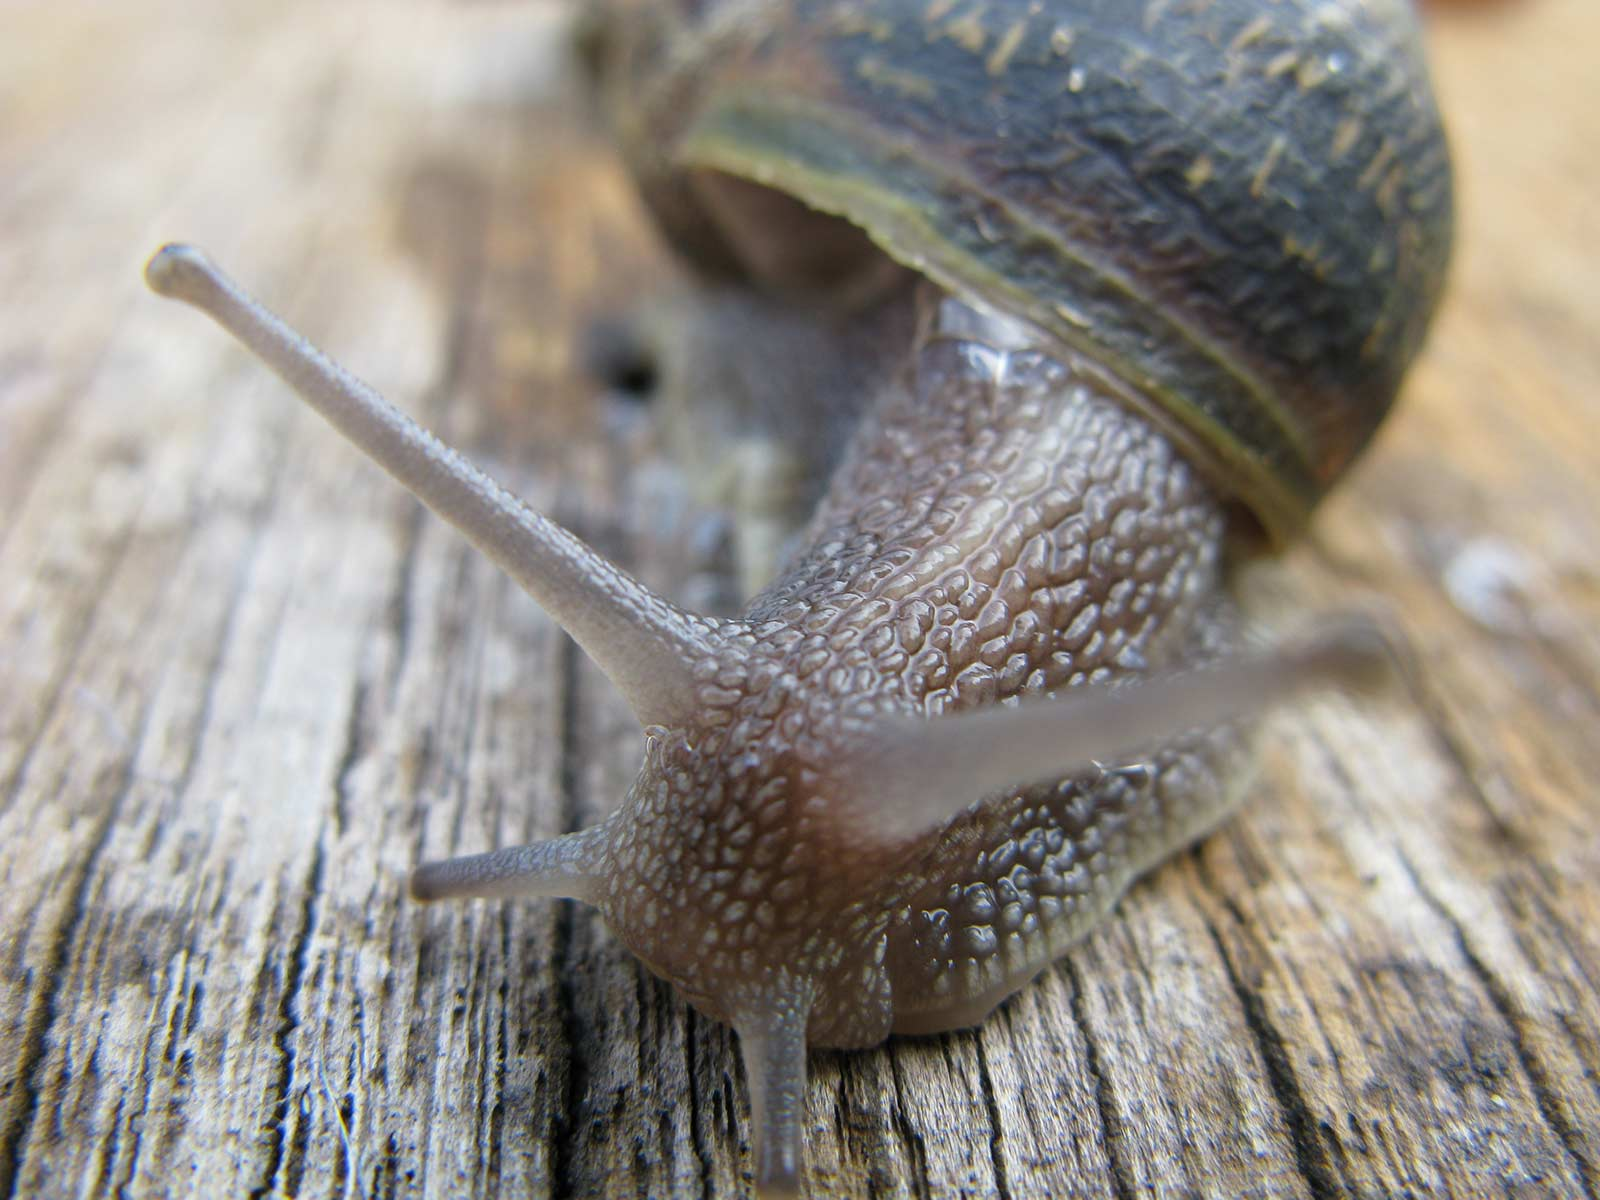 Snail, © Reuben Grey Ford, Winner in category Children's Photographer under 11, RHS Photographic Competition / RHS Gardening